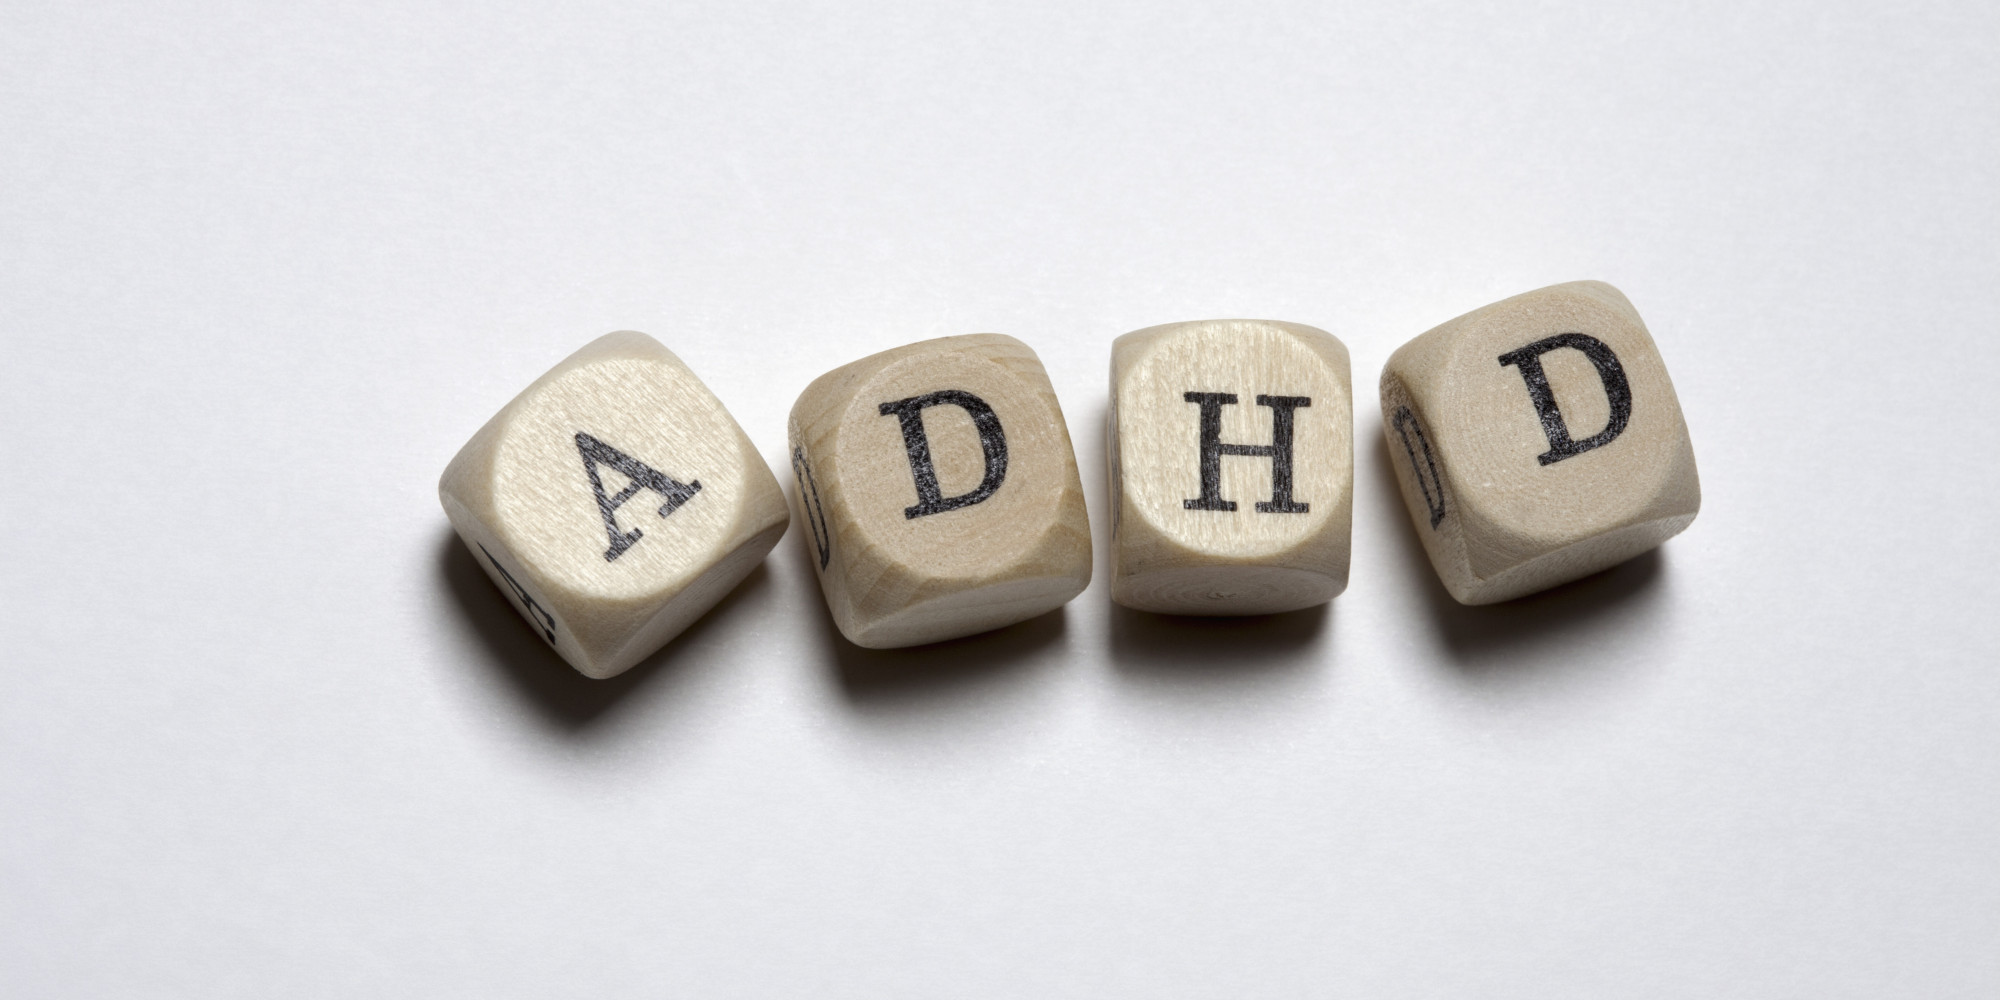 Mental Wealth: 1. ADHD